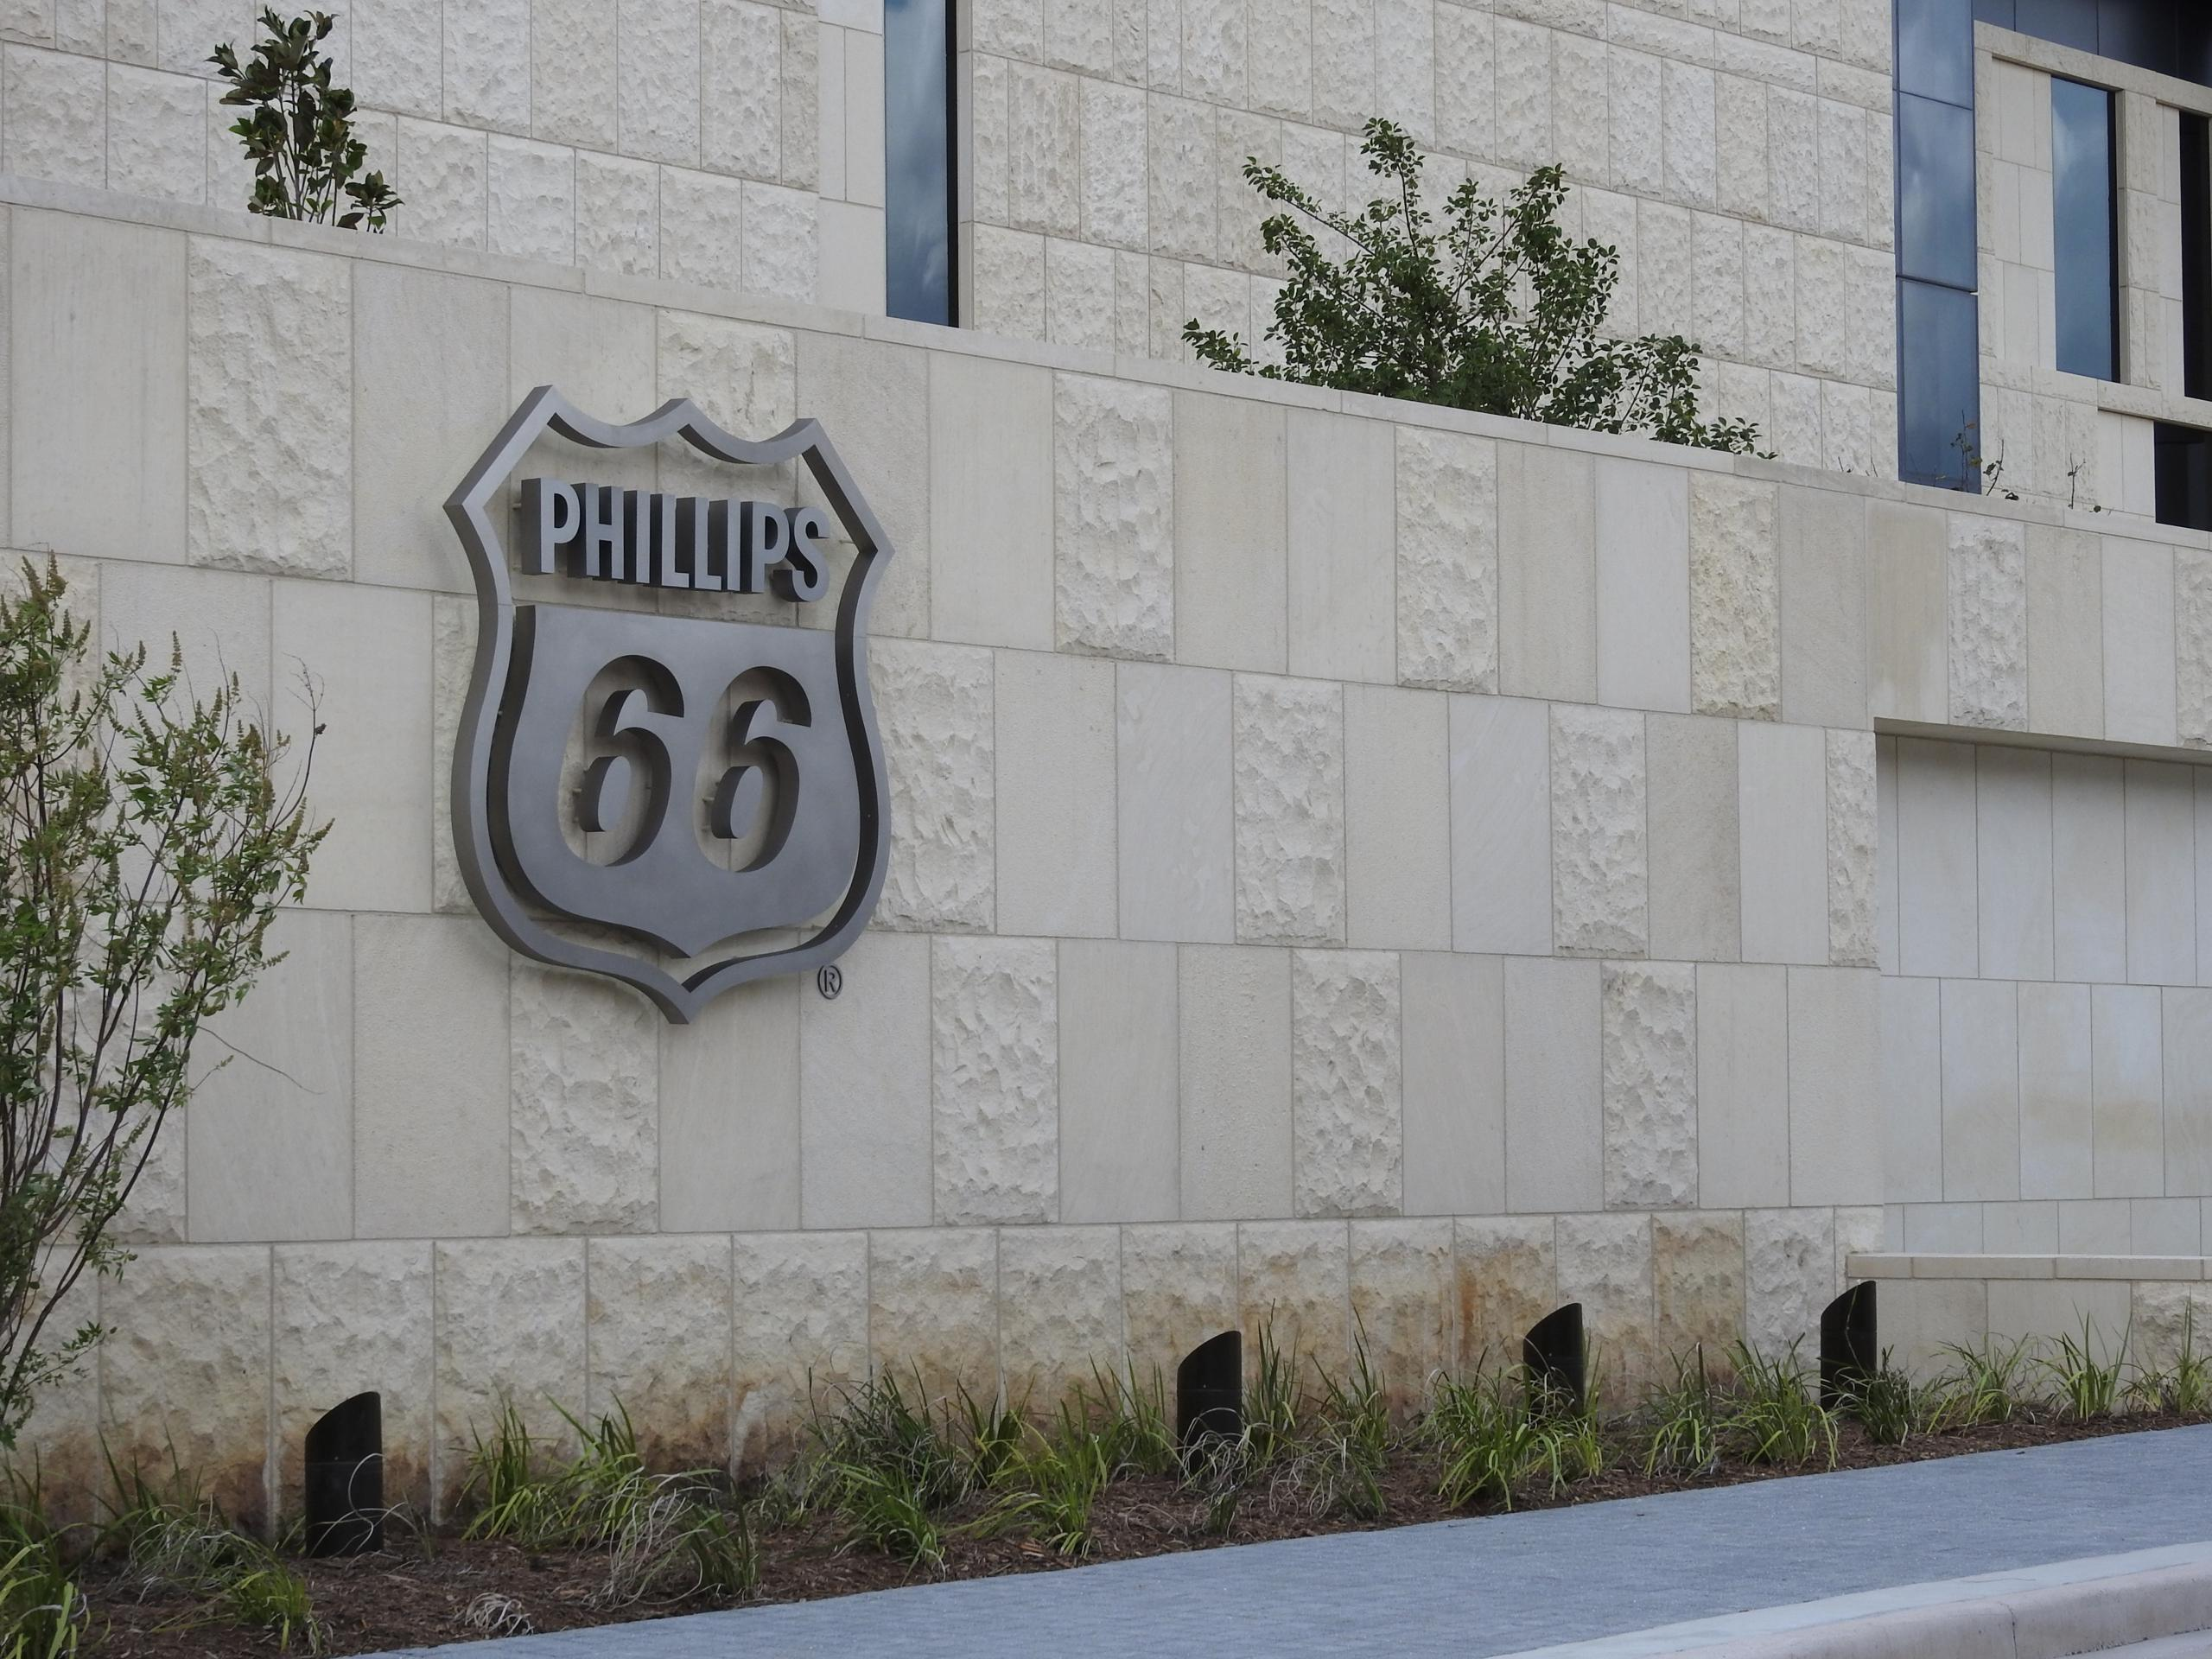 Entrance to Phillips 66's corporate headquarters in Houston, Texas.